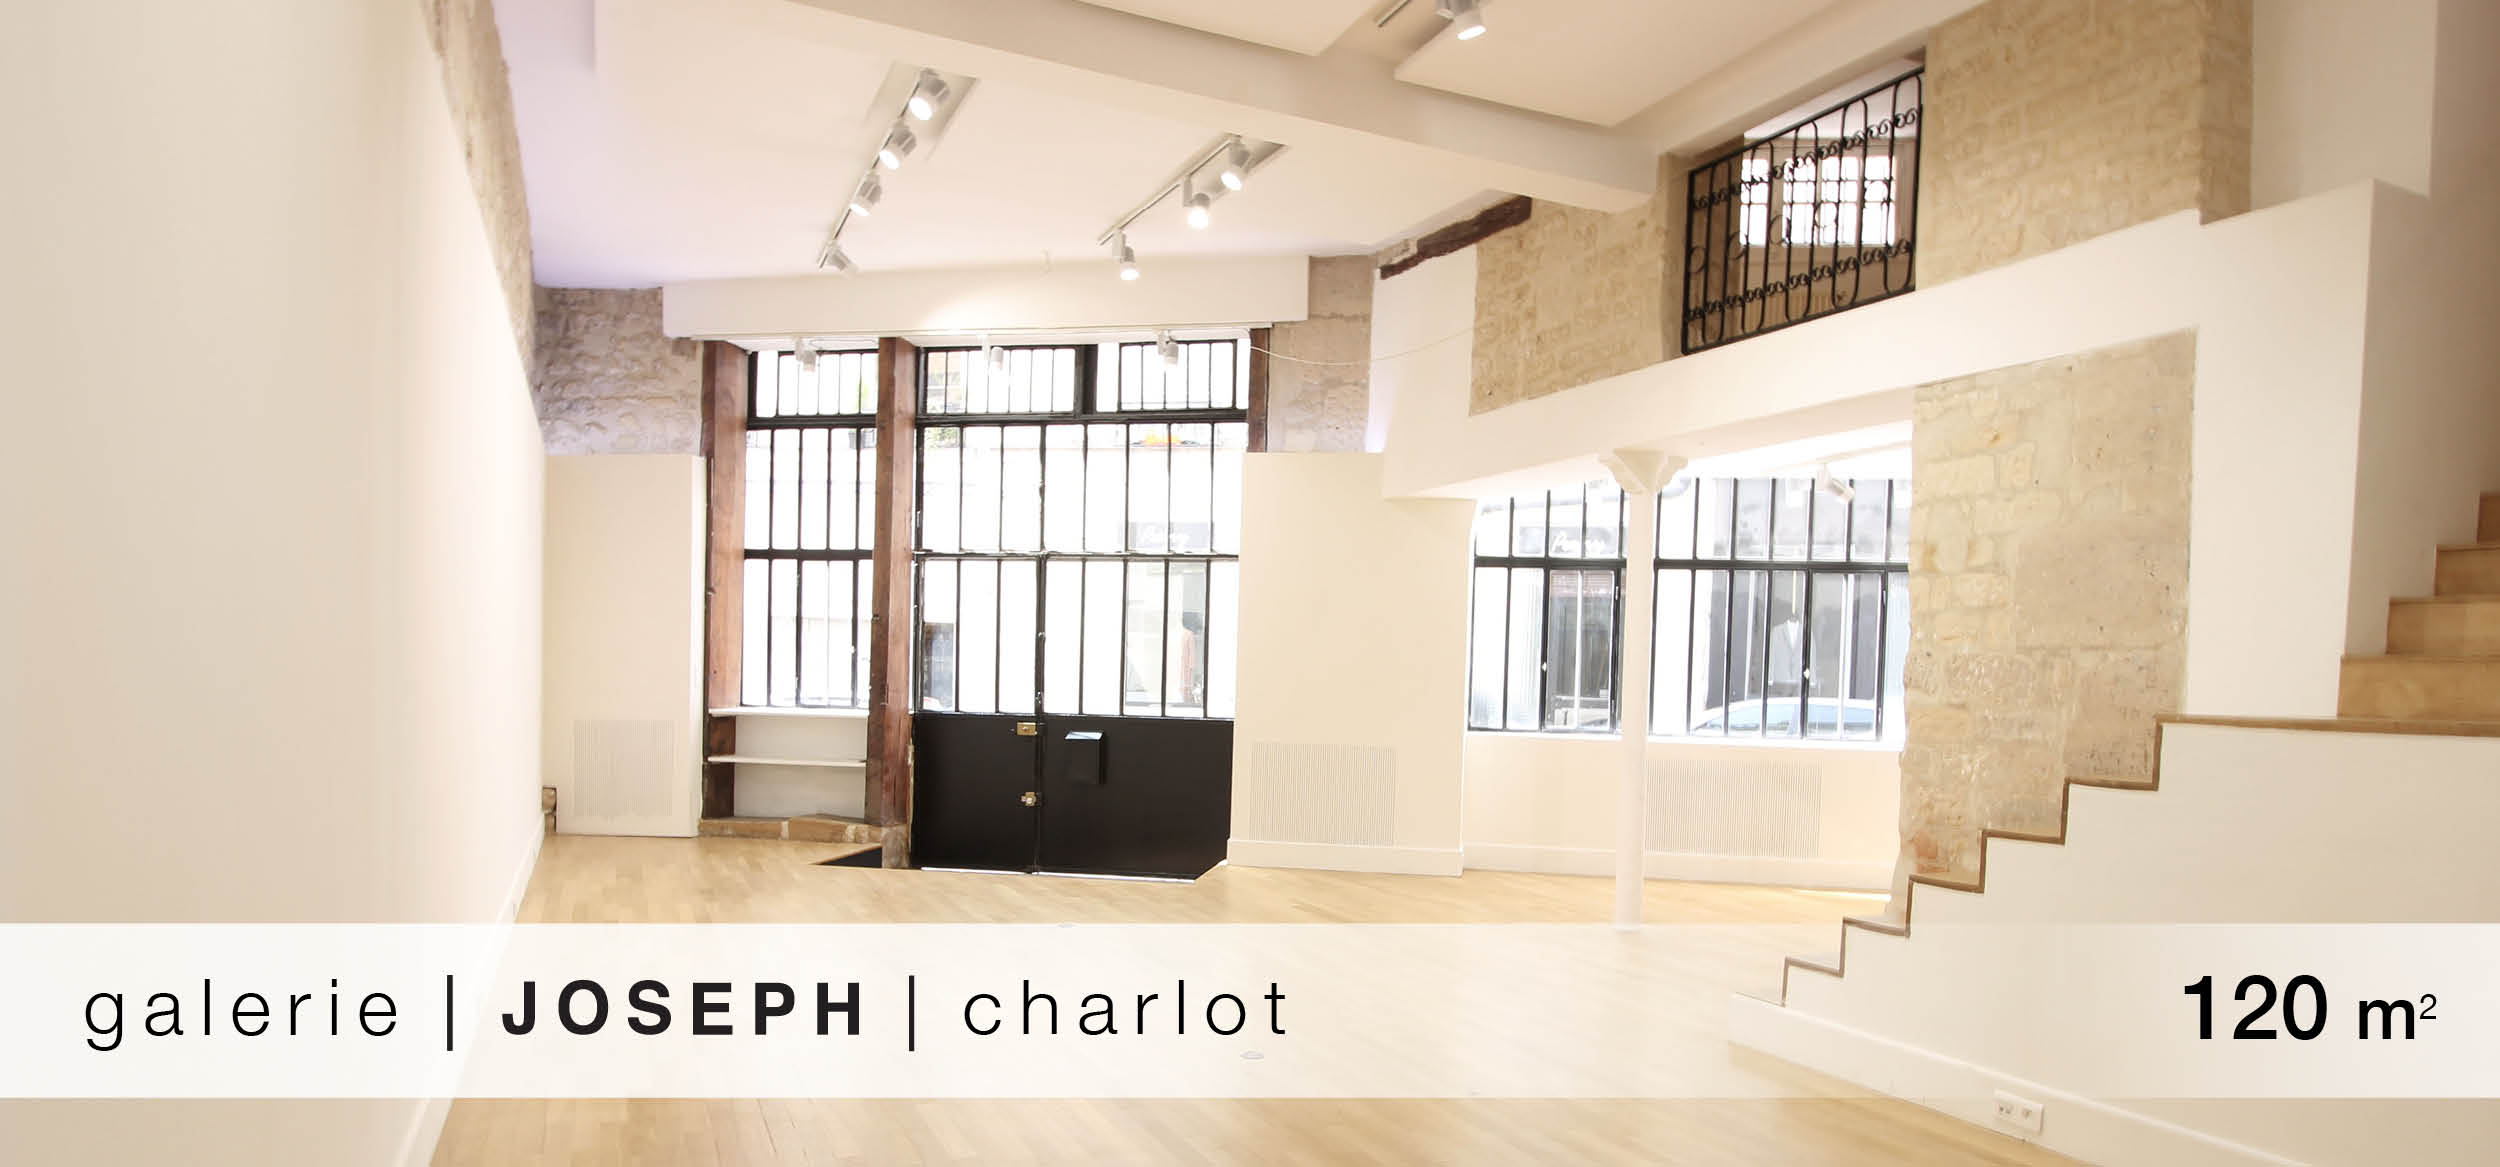 Galerie Joseph Charlot location showroom Charlot